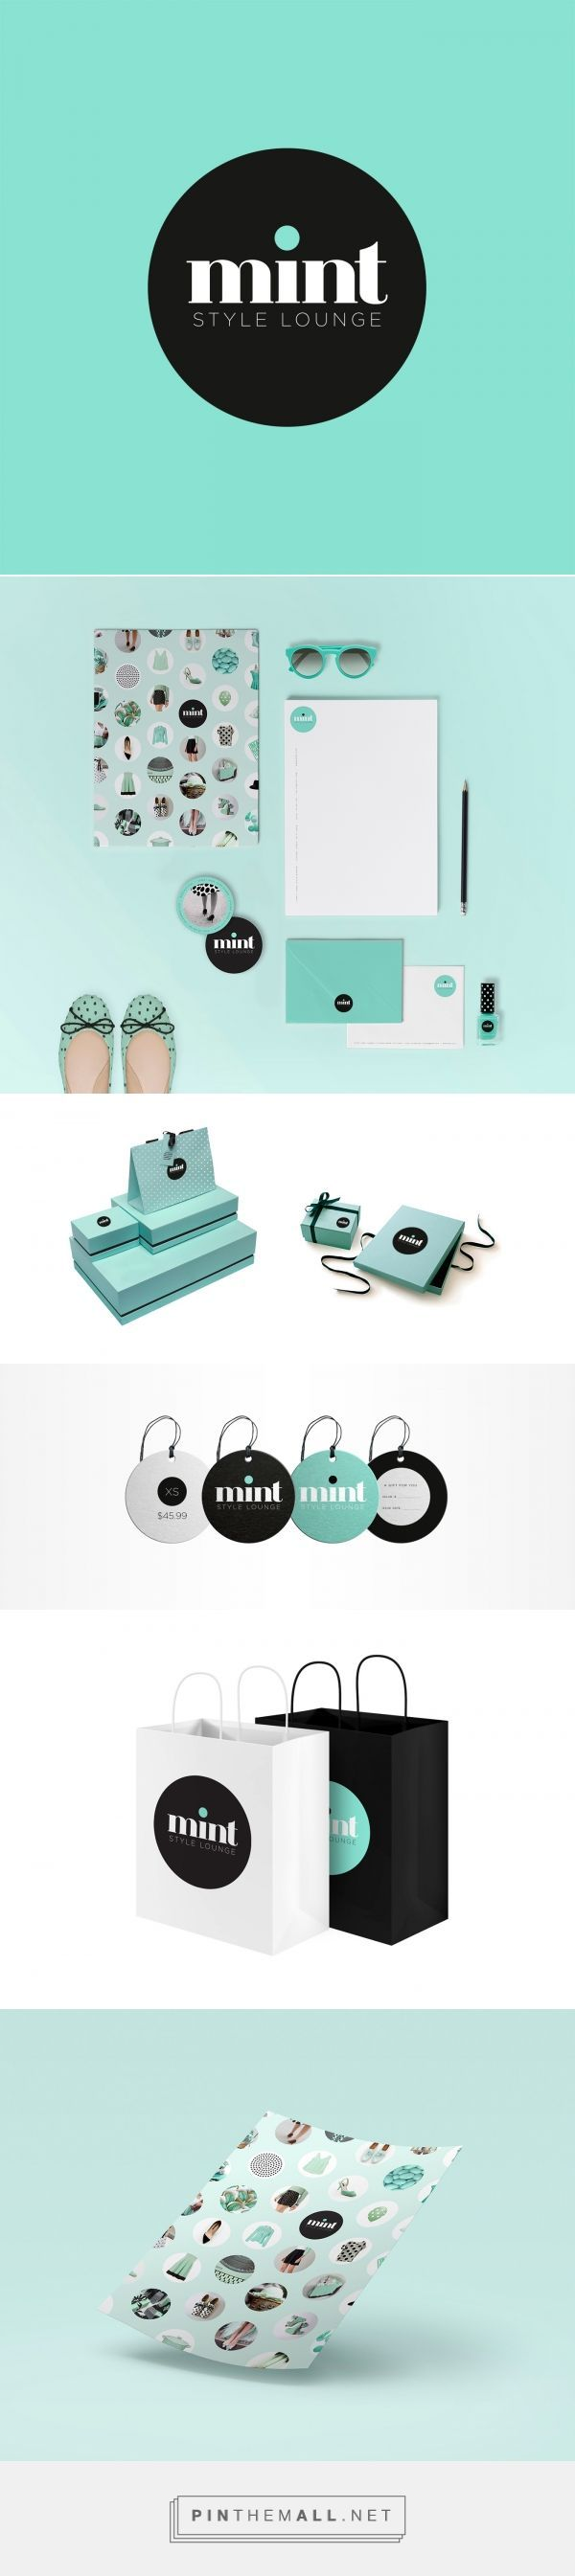 Mint Fashion Branding by Carmen Virginia Grisolía | Fivestar Branding Agency – Design and Branding Agency & Curated Inspiration Gallery